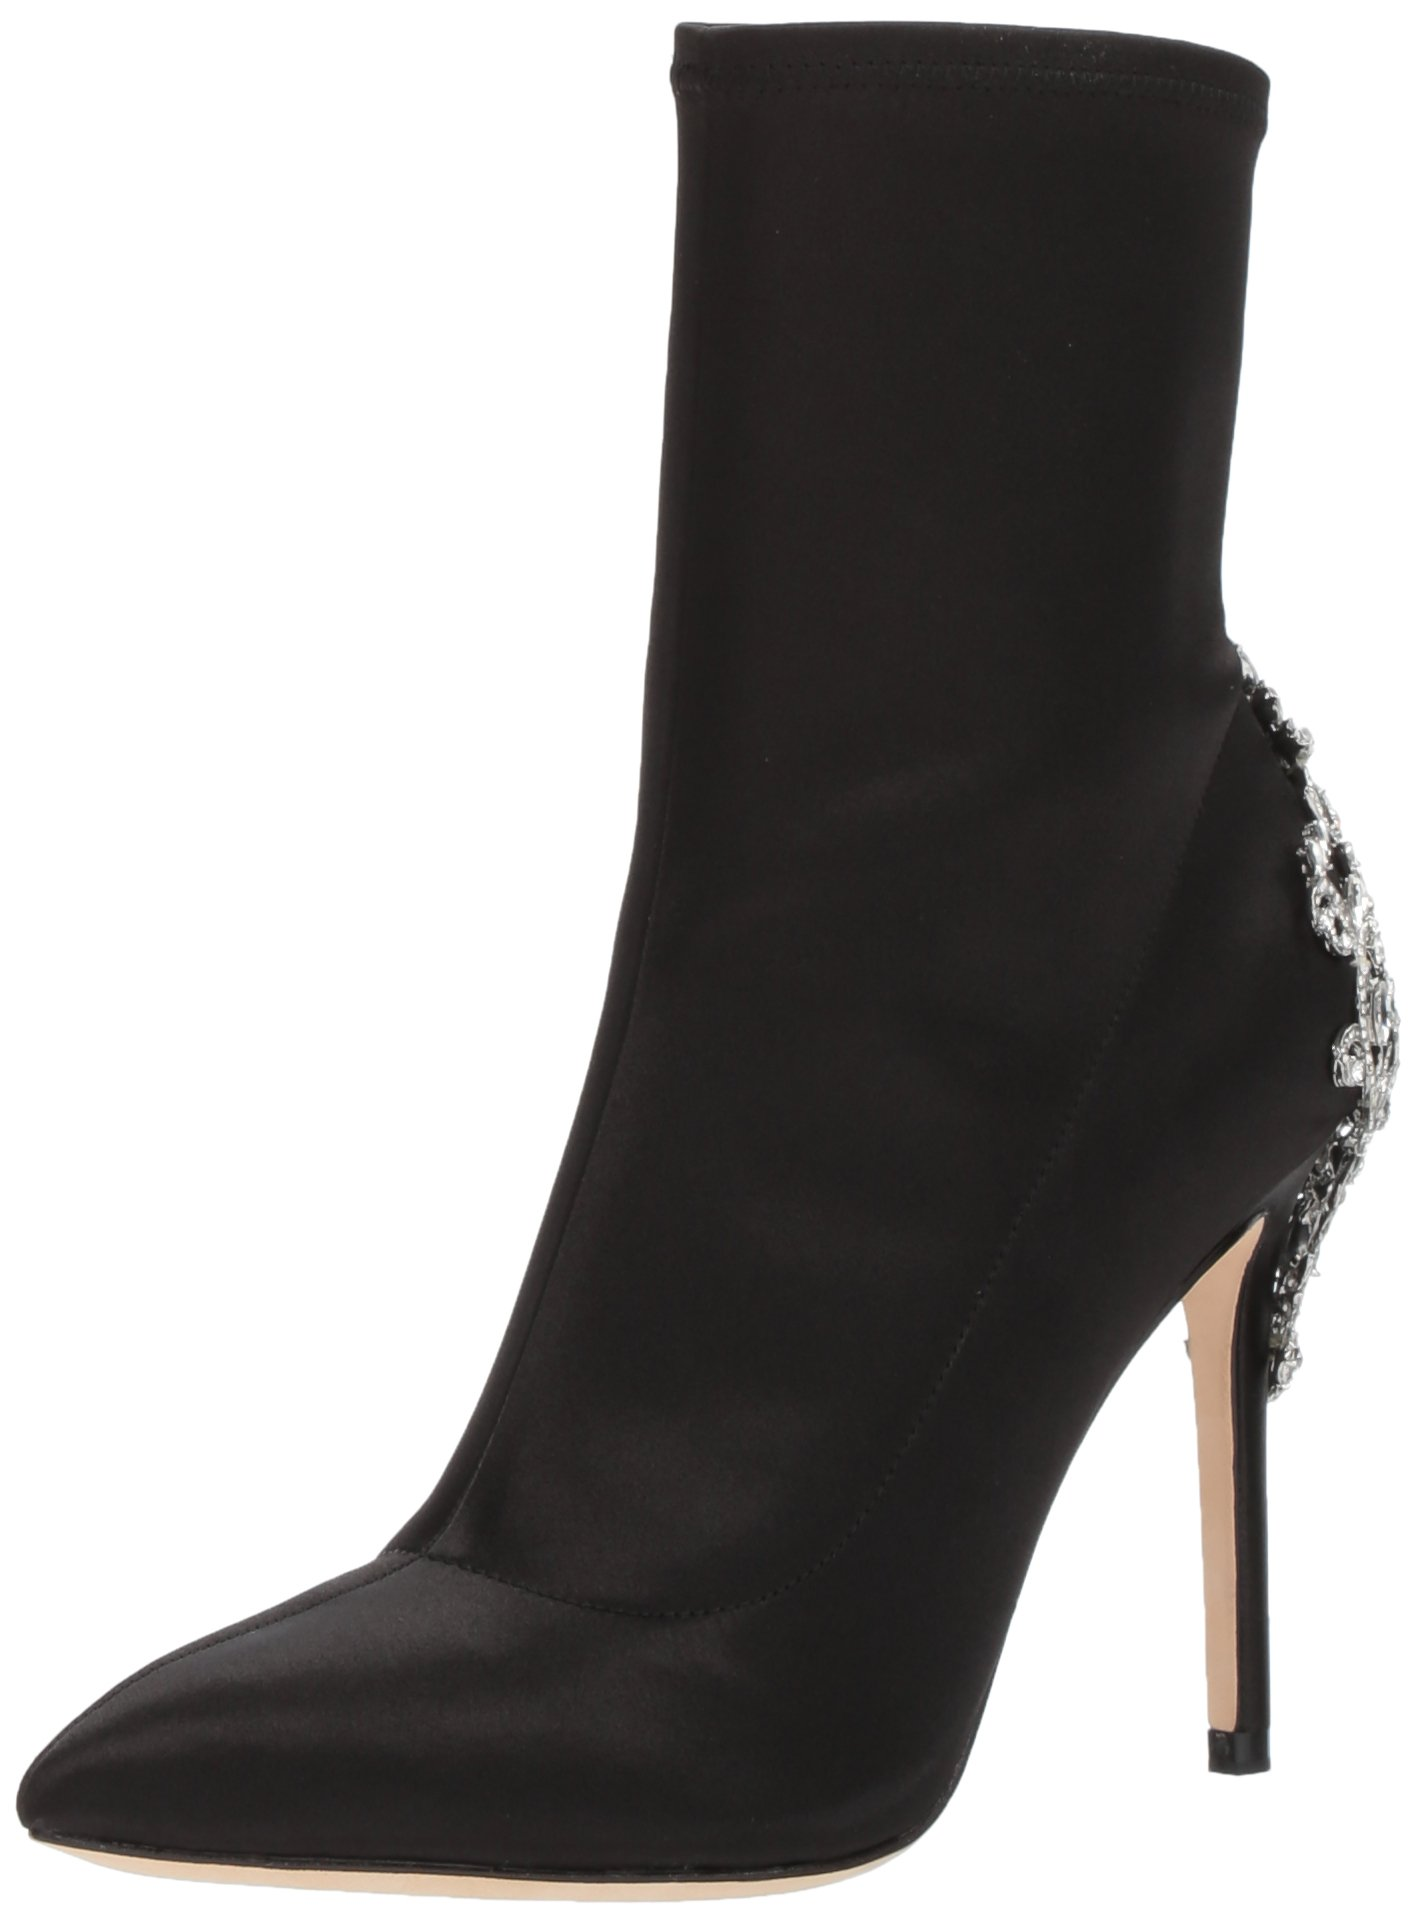 Badgley Mischka Women's Meg Ankle Boot, Black, 9 M US